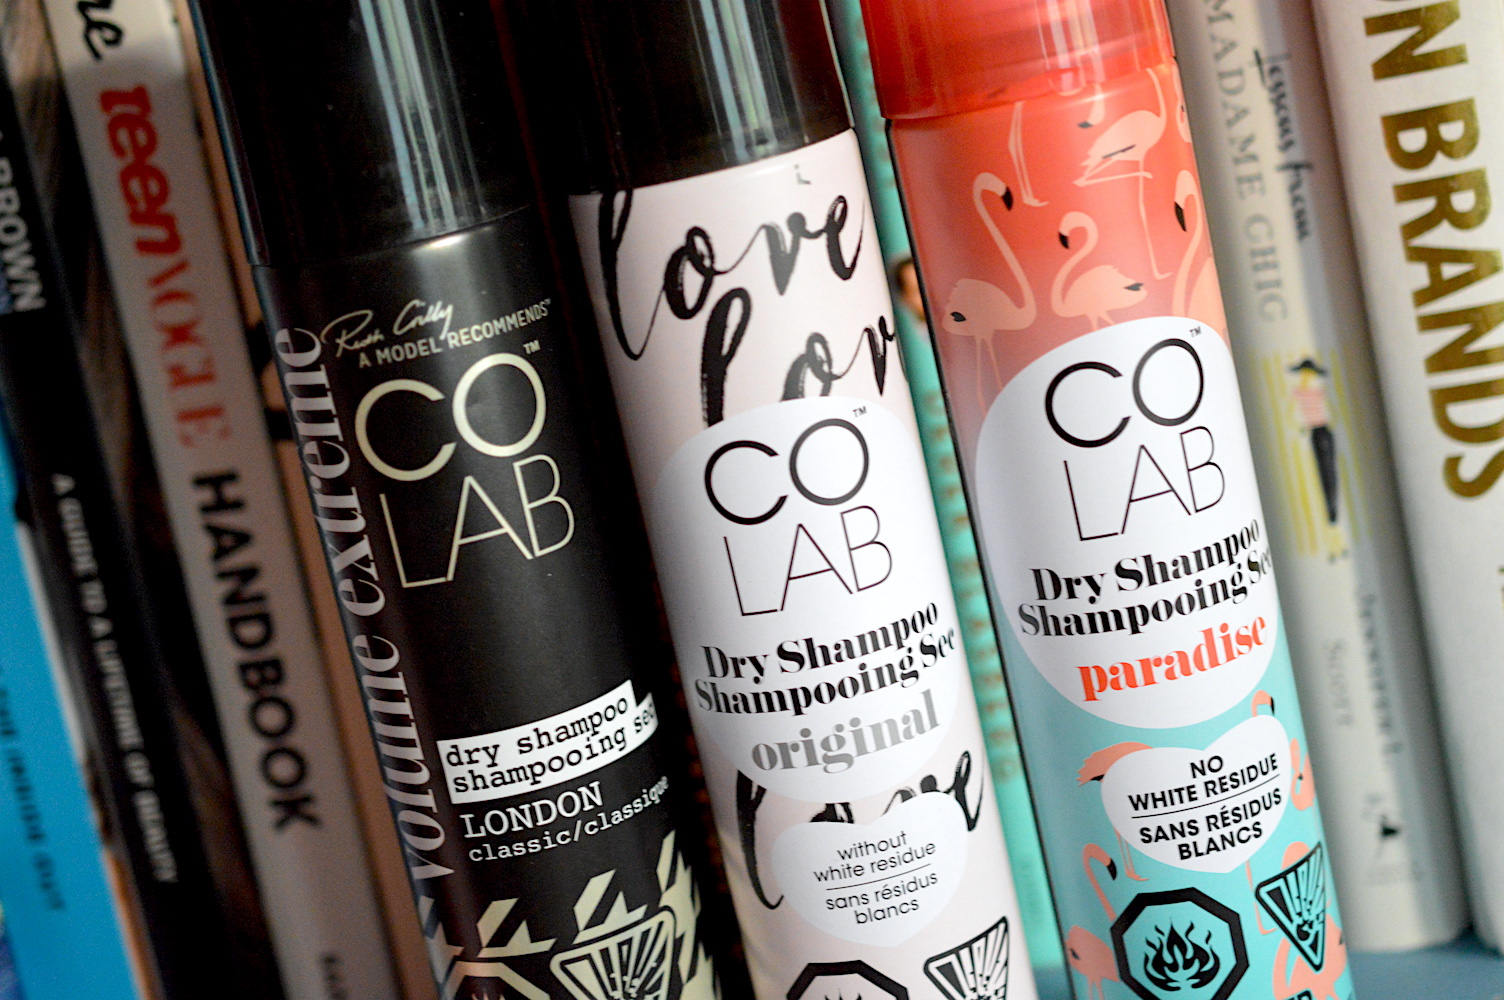 colab dry shampoo review